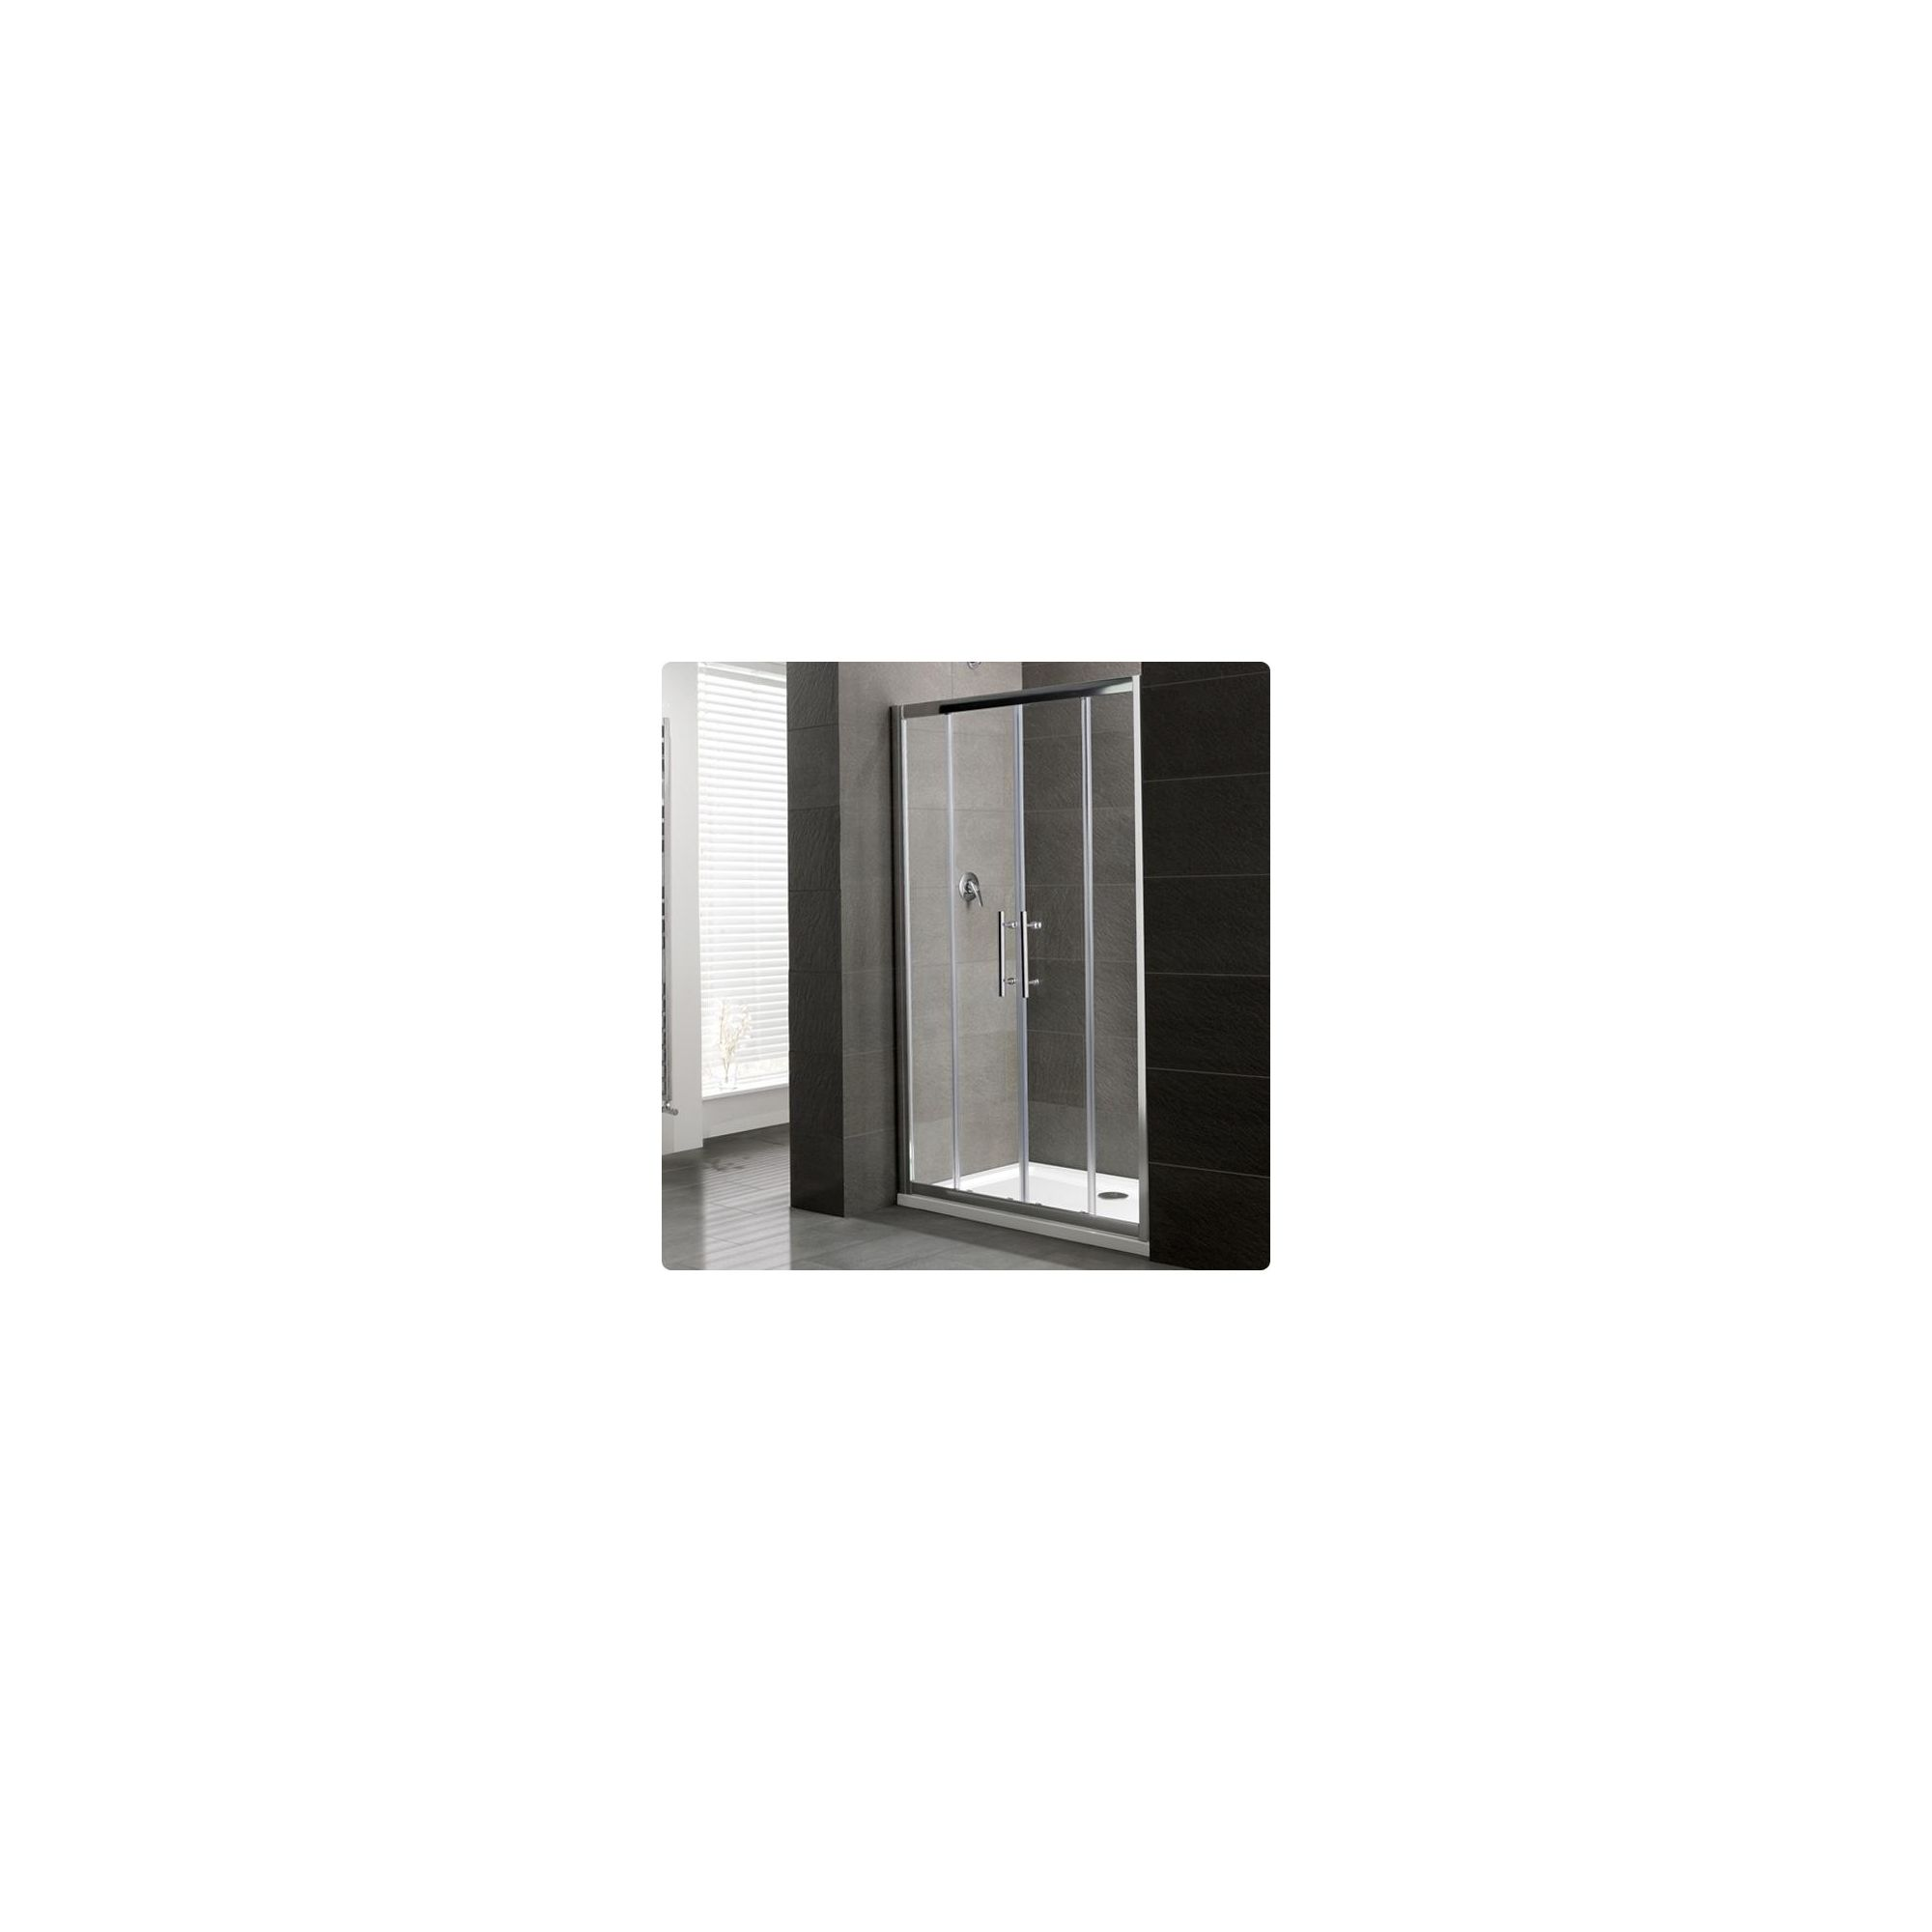 Duchy Select Silver Double Sliding Door Shower Enclosure, 1600mm x 760mm, Standard Tray, 6mm Glass at Tesco Direct